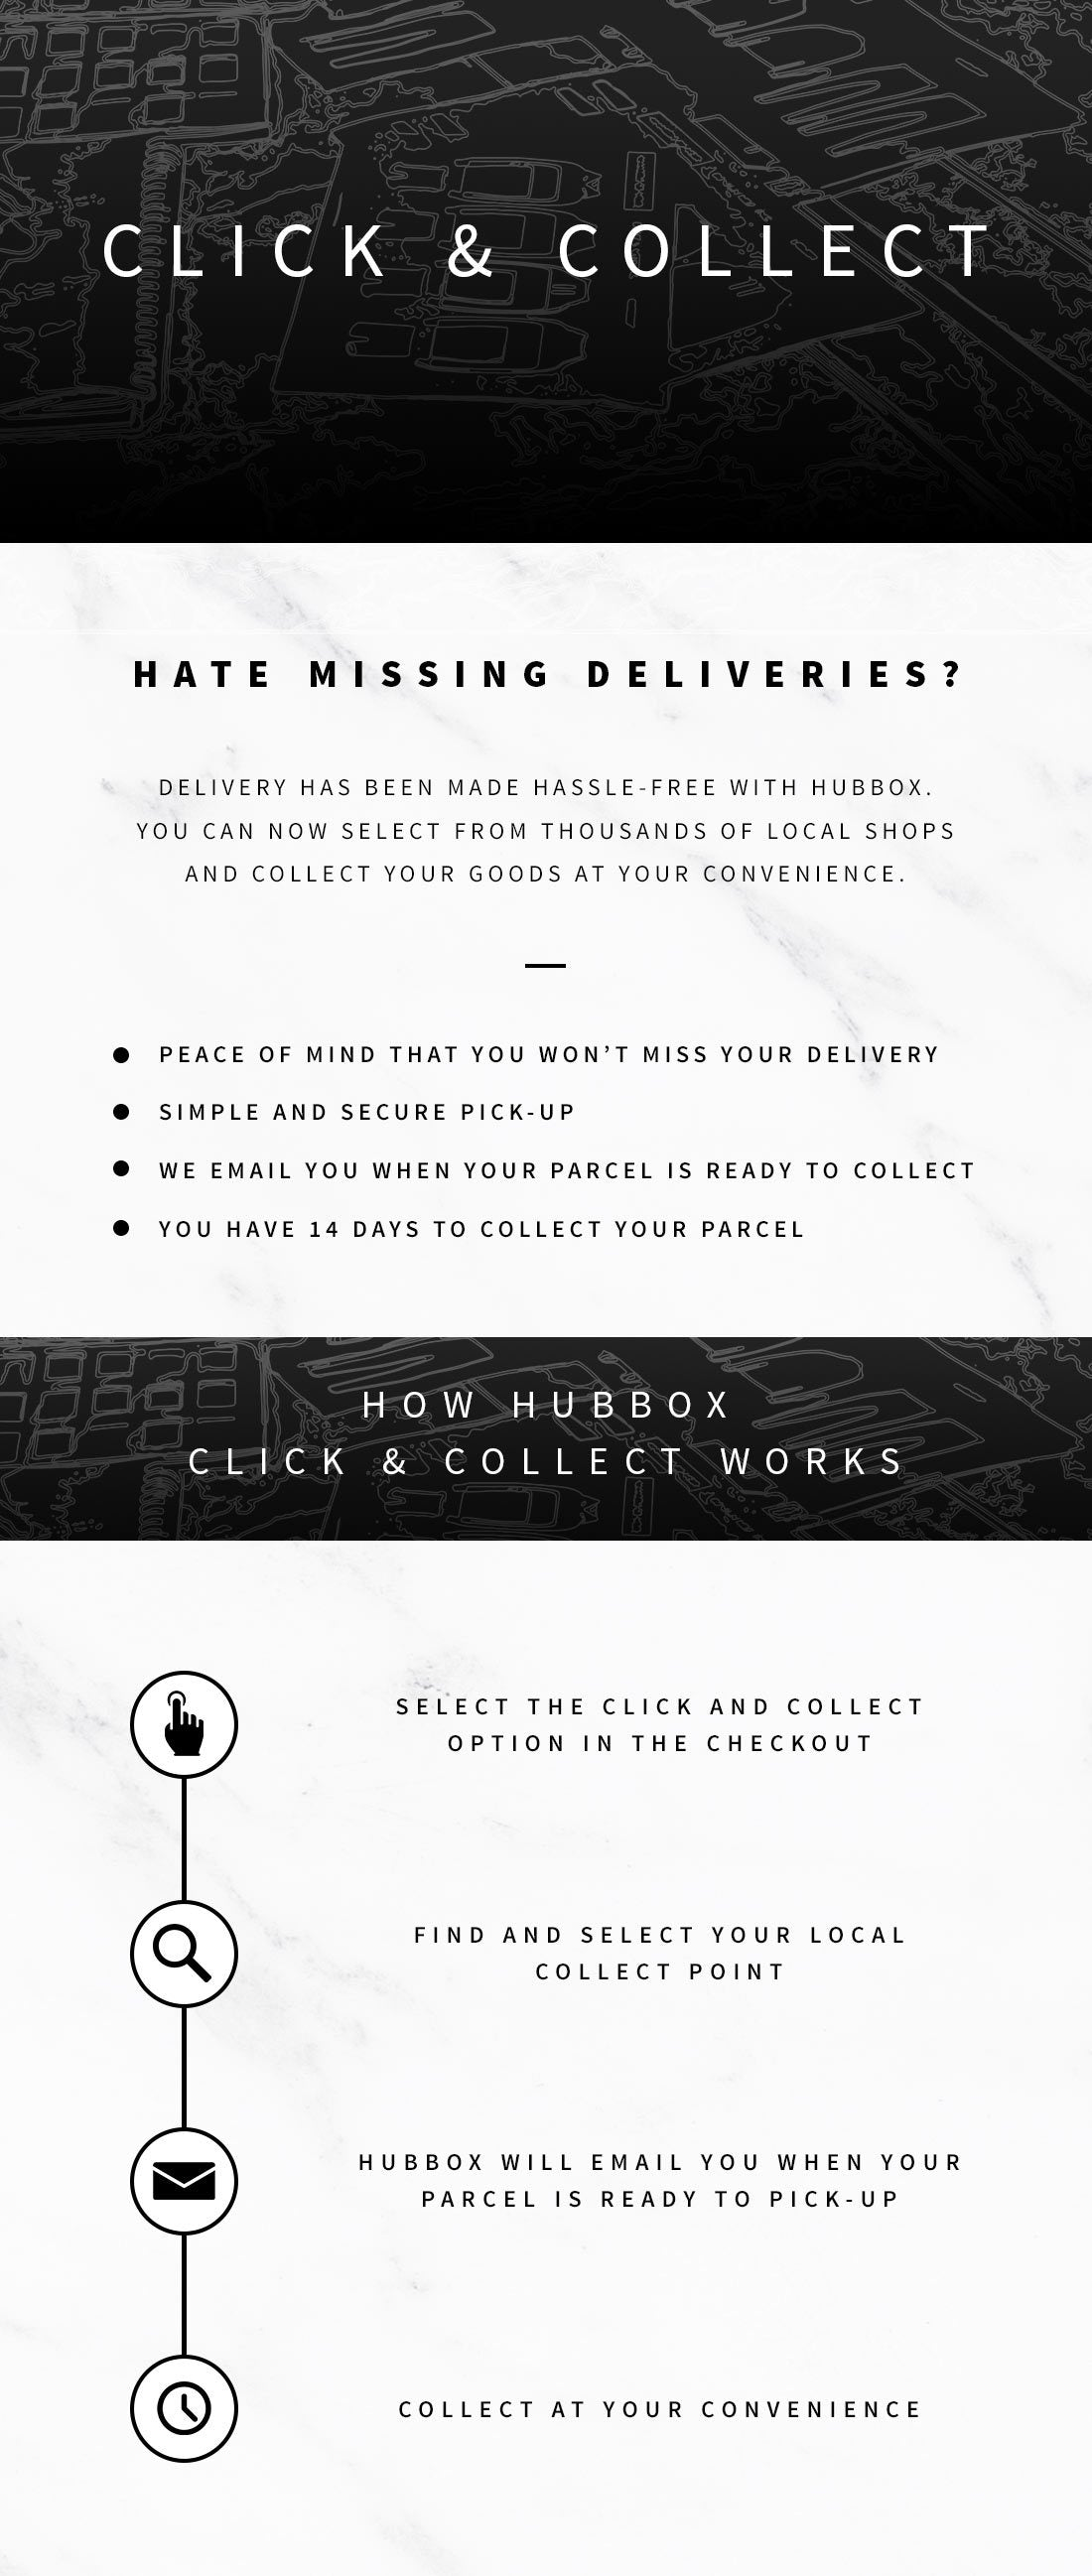 click-collect-hubbox